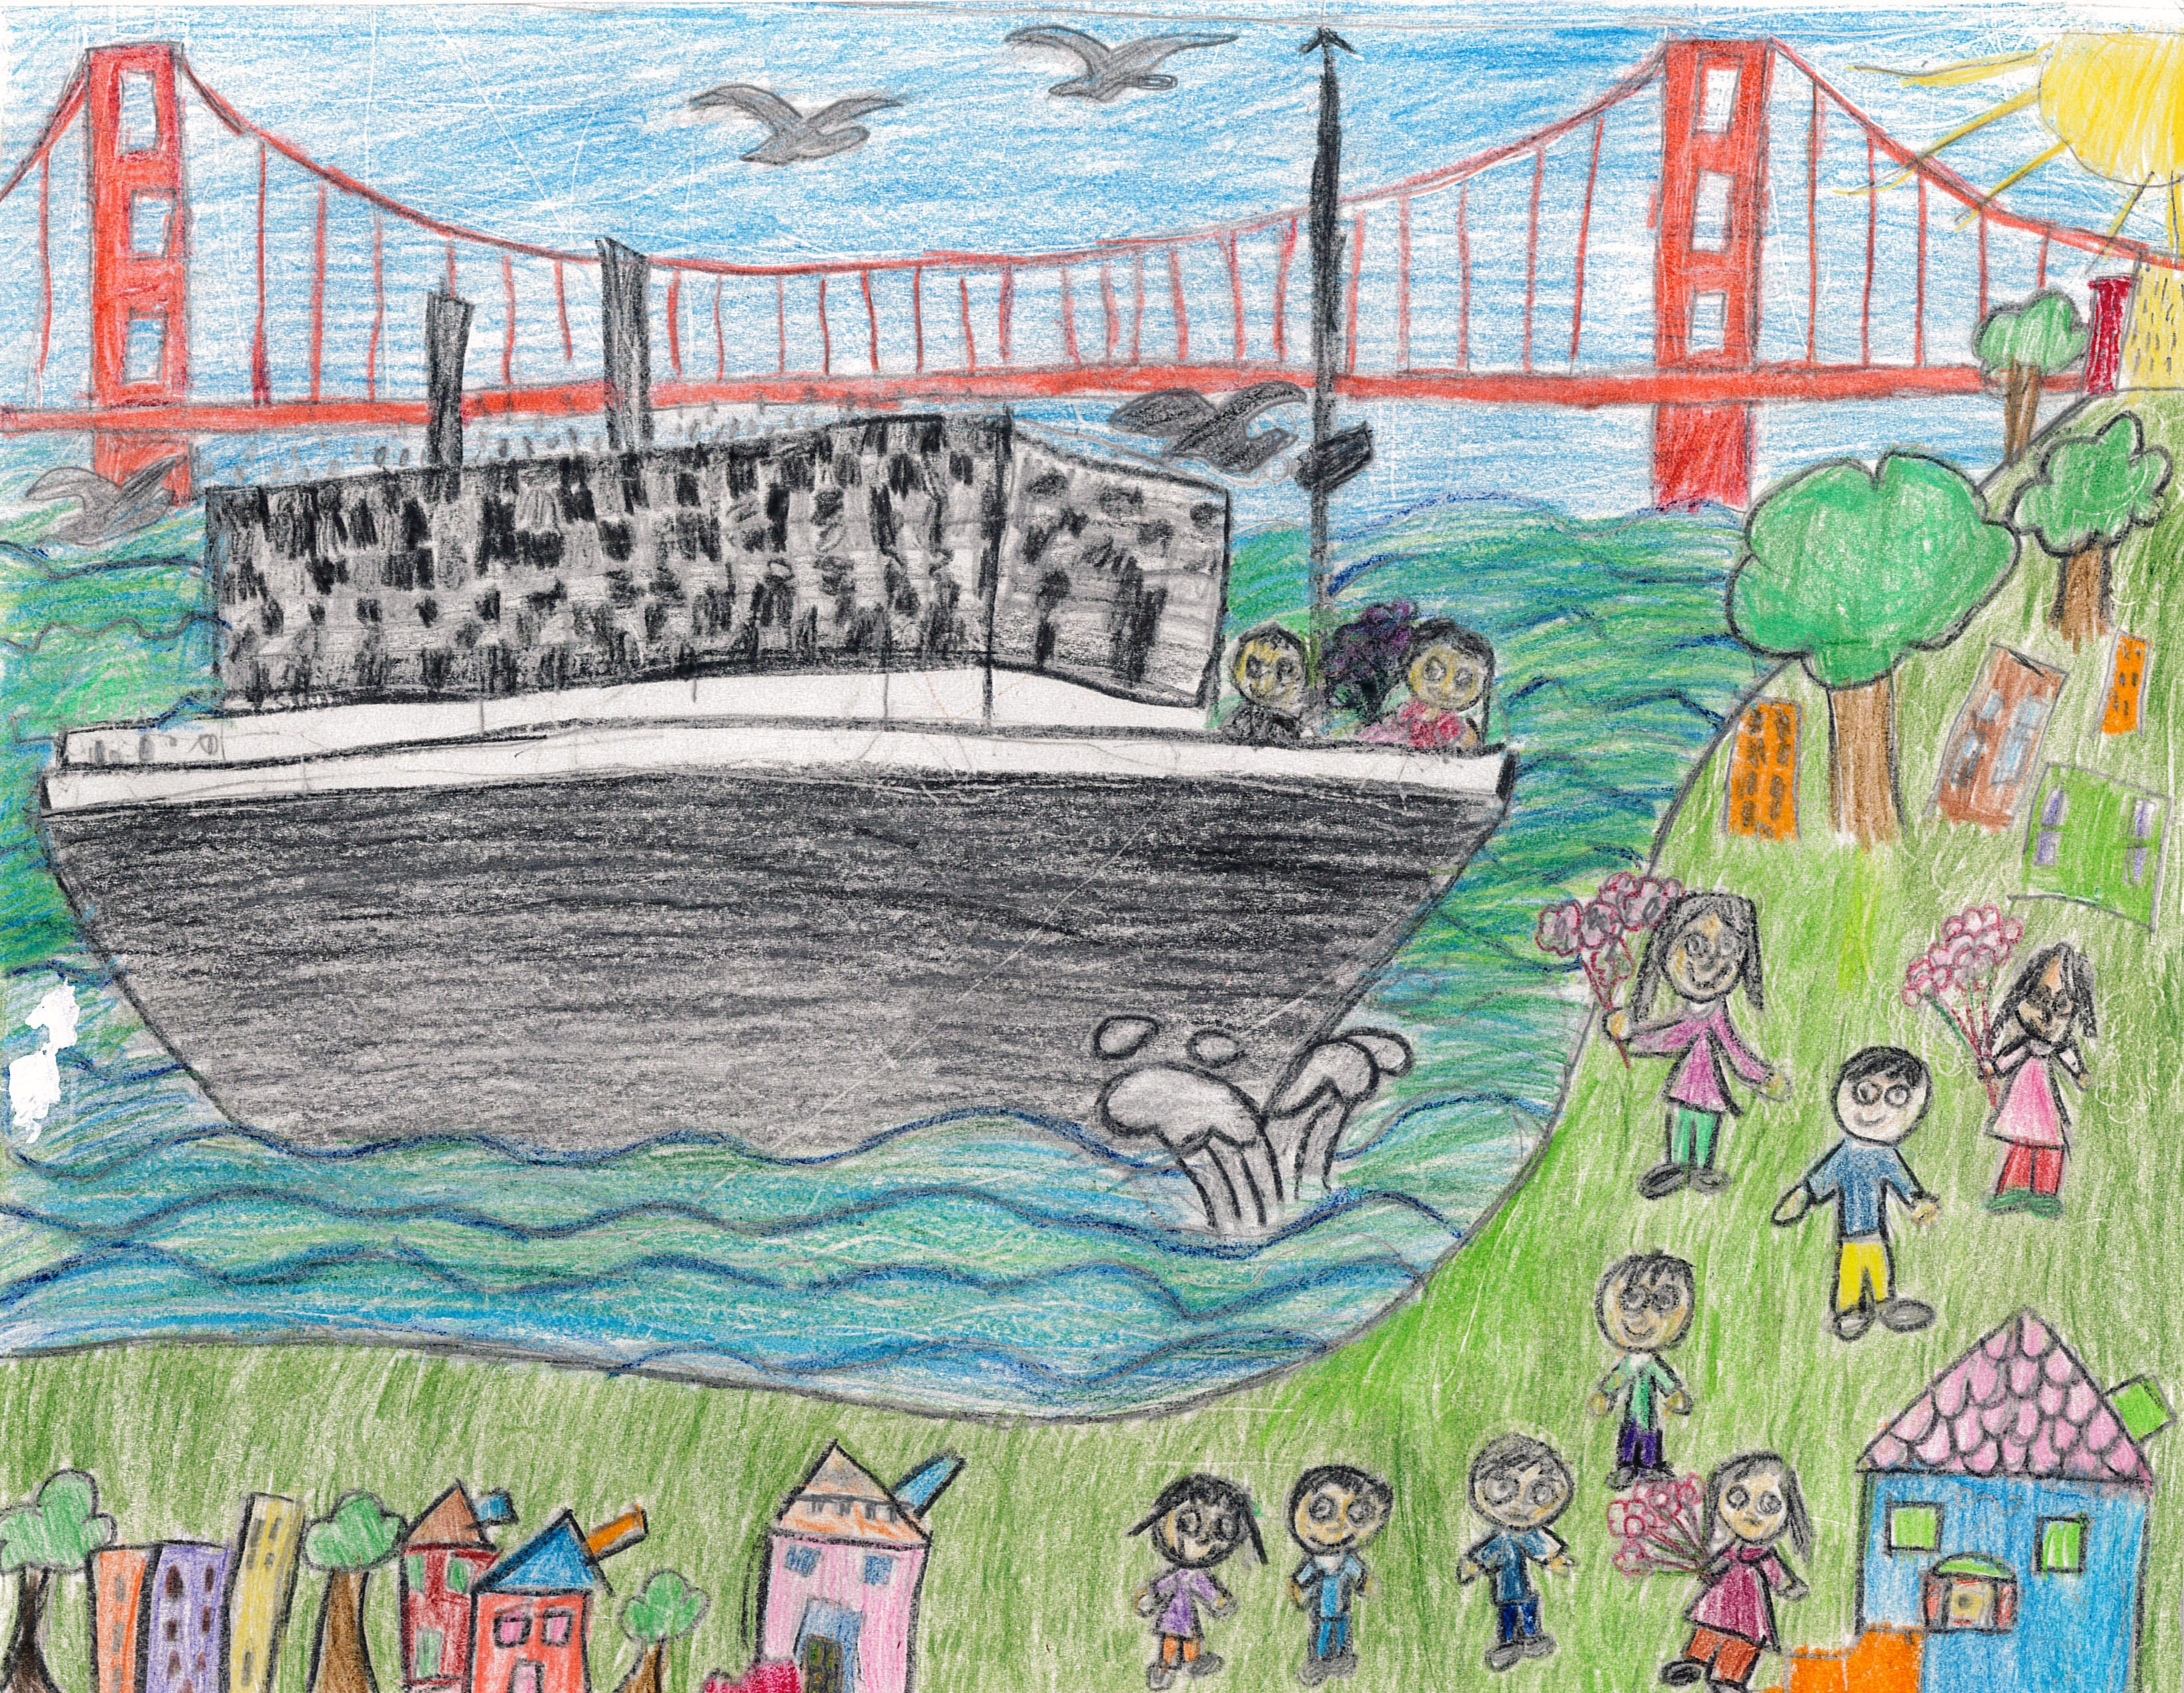 Jenna Ryan / Past Meets Present - Greeting Great-Grandmother's Boat / Honorable Mention / Grade 3